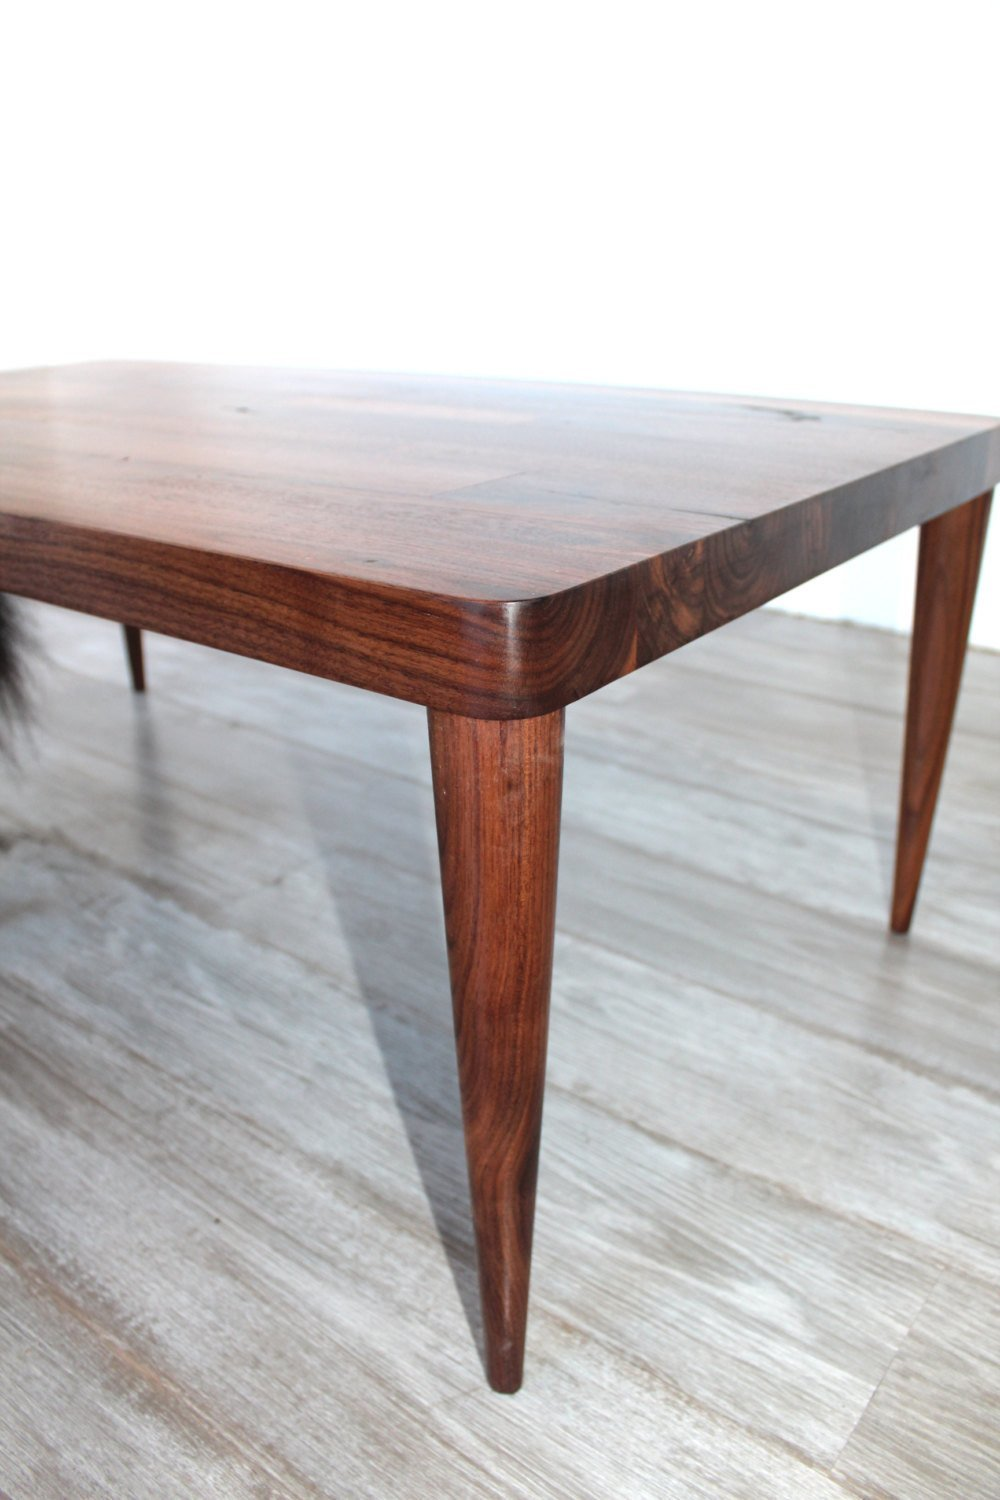 Divisadero Coffee Table - JeremiahCollection - 2